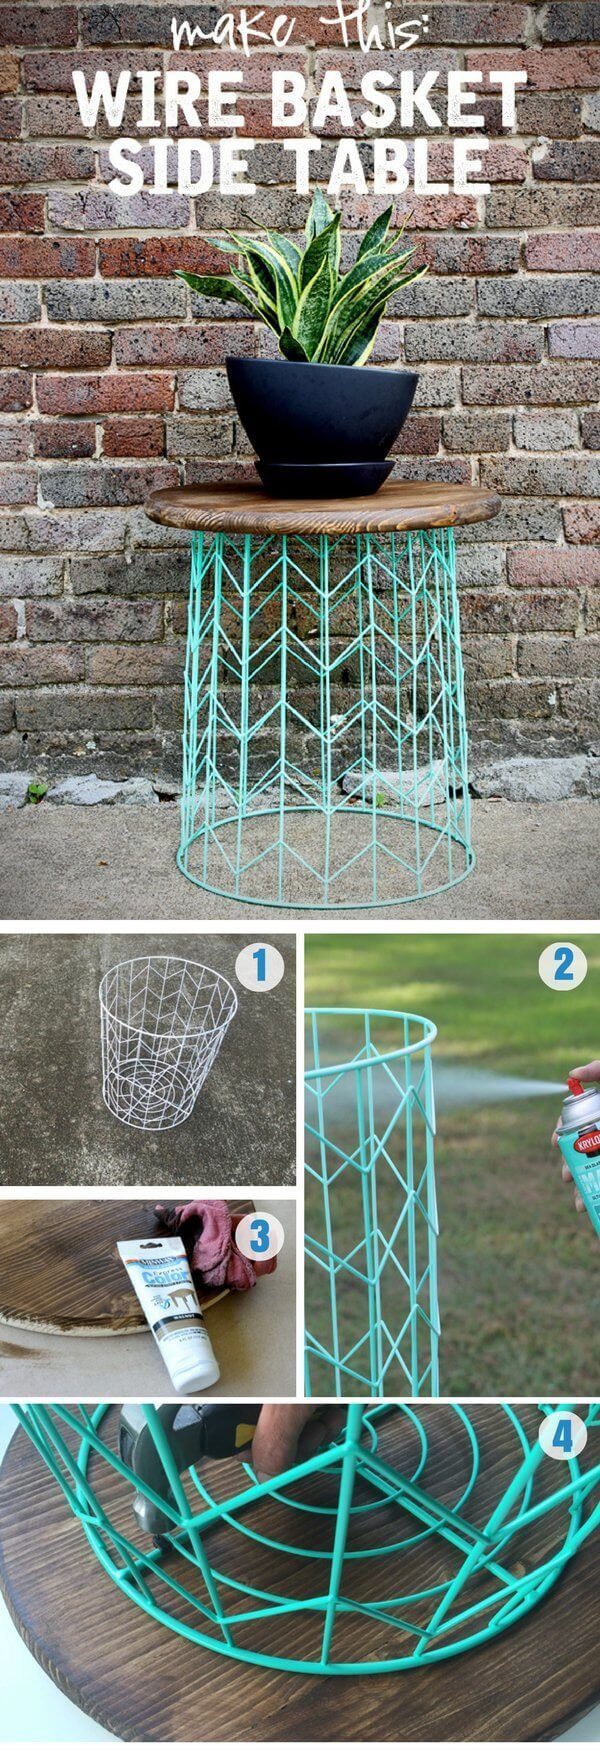 best  wire basket decor ideas on pinterest  blanket storage  -  diy outdoor furniture projects to beautify your outdoor space wirebasket